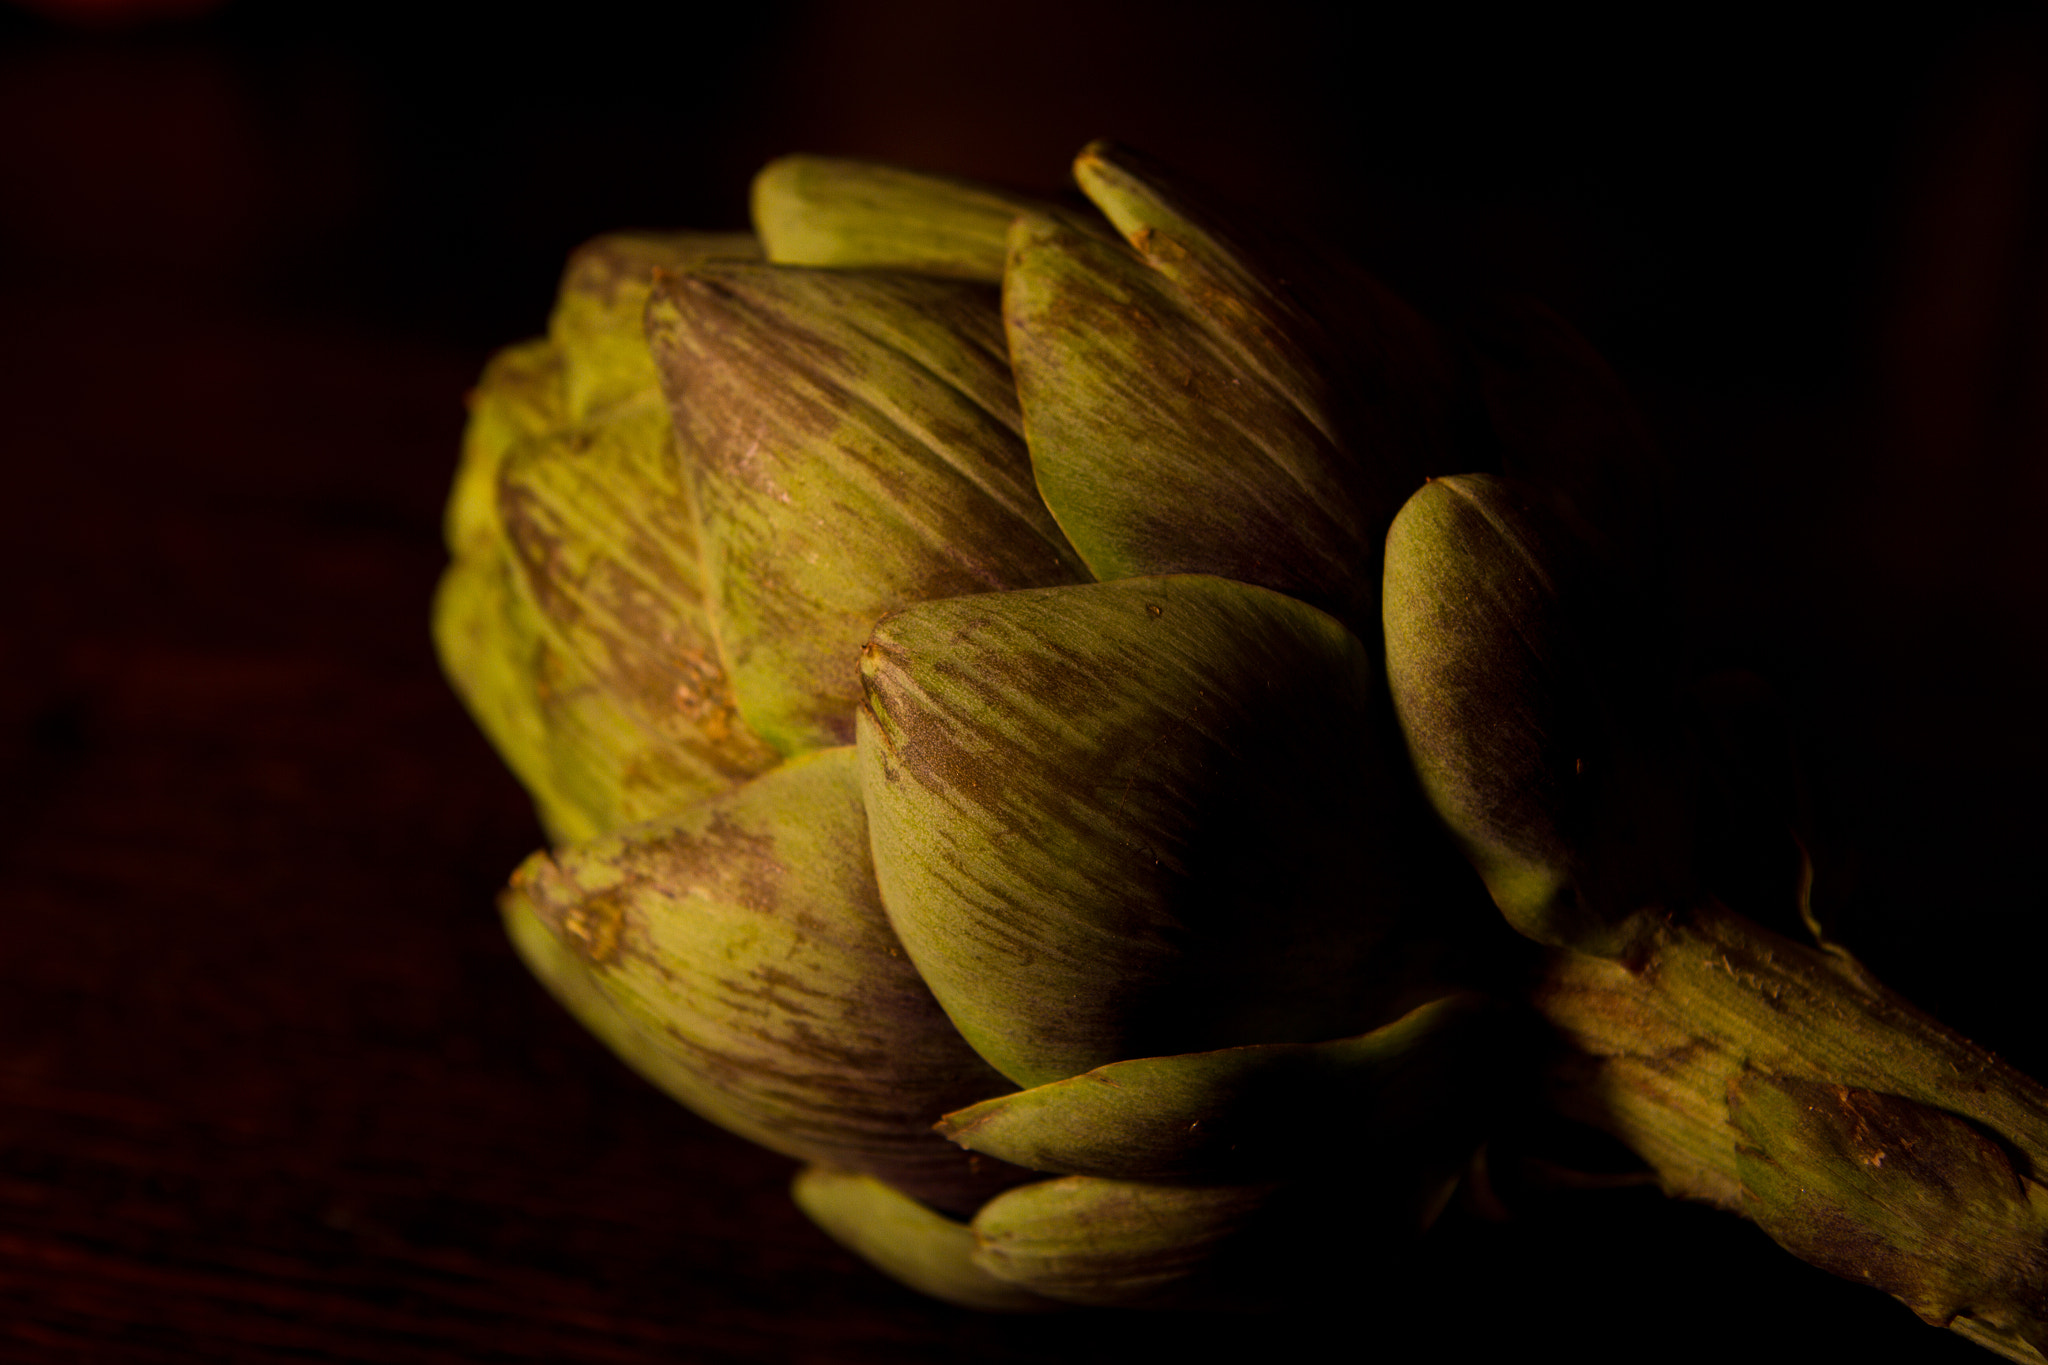 Photograph Artichoke III by Annie Macfhay on 500px